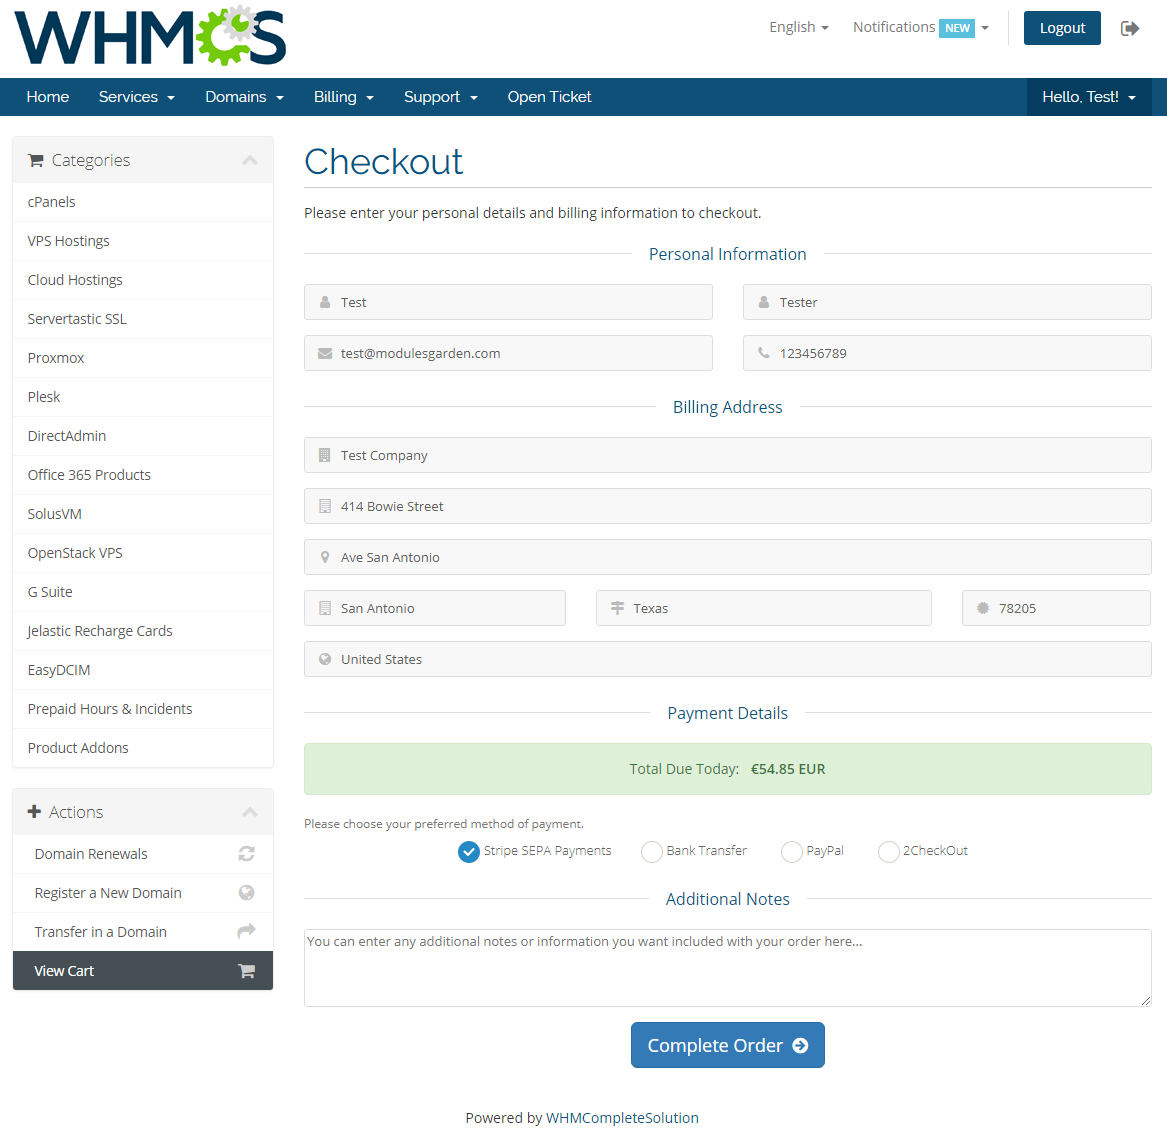 Stripe SEPA Payments For WHMCS: Screen 2